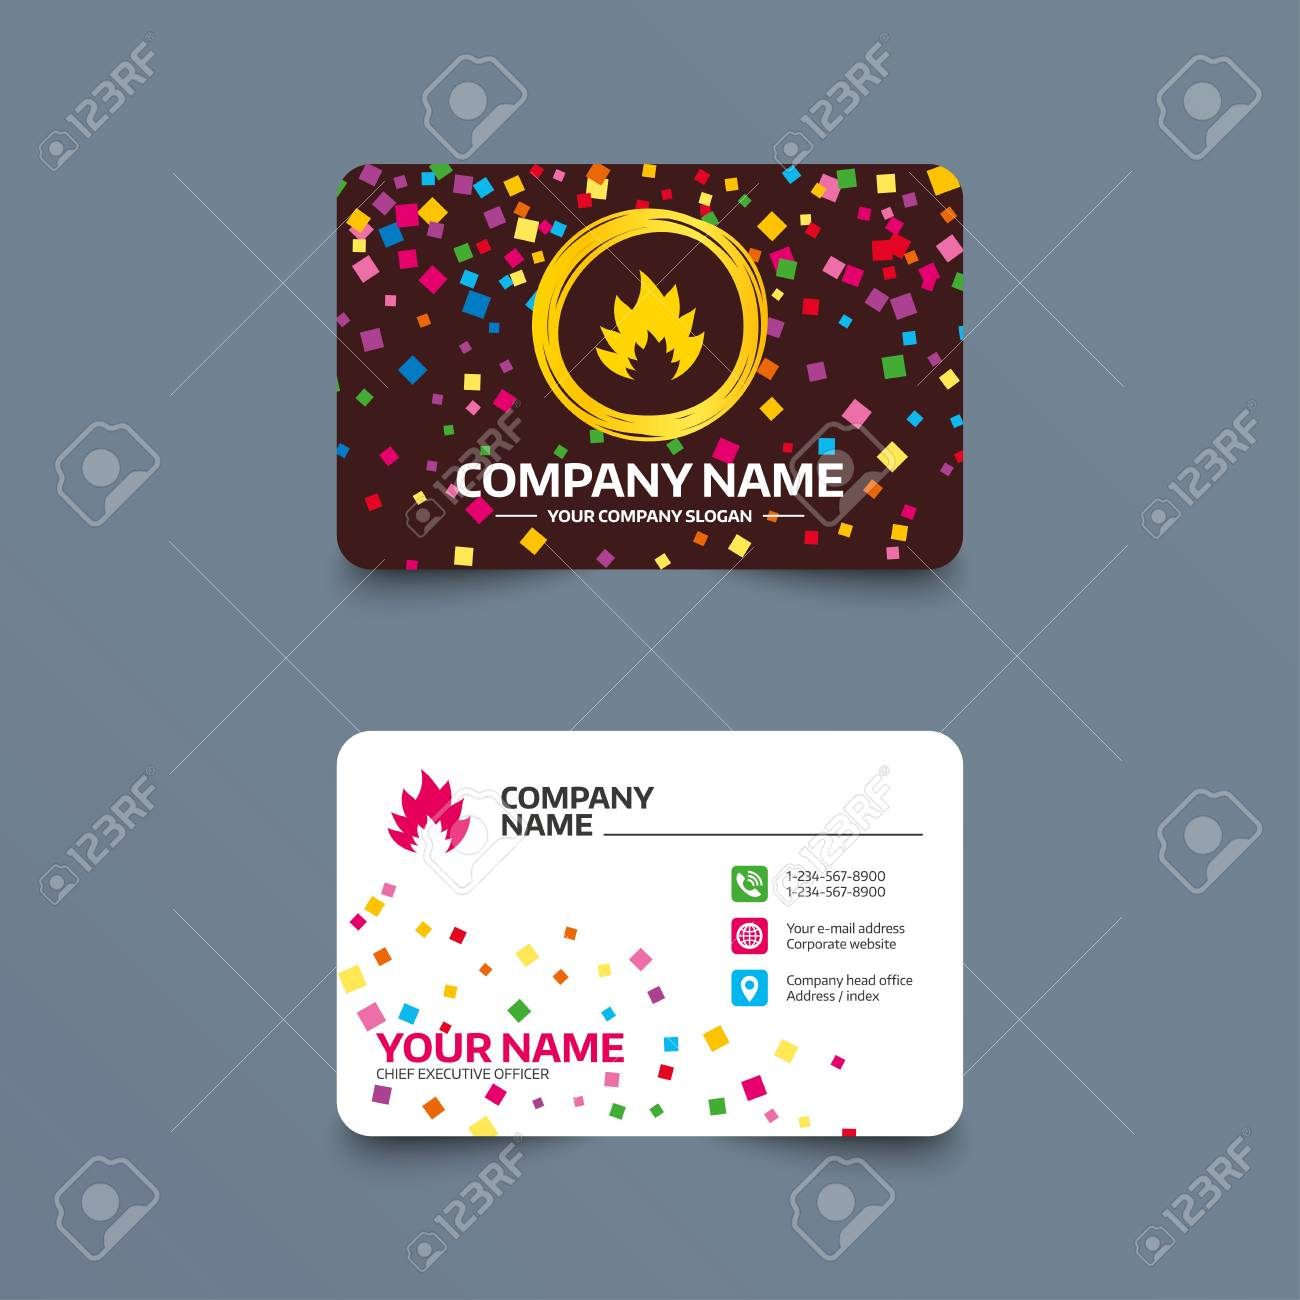 Business card template with confetti pieces  Fire flame sign